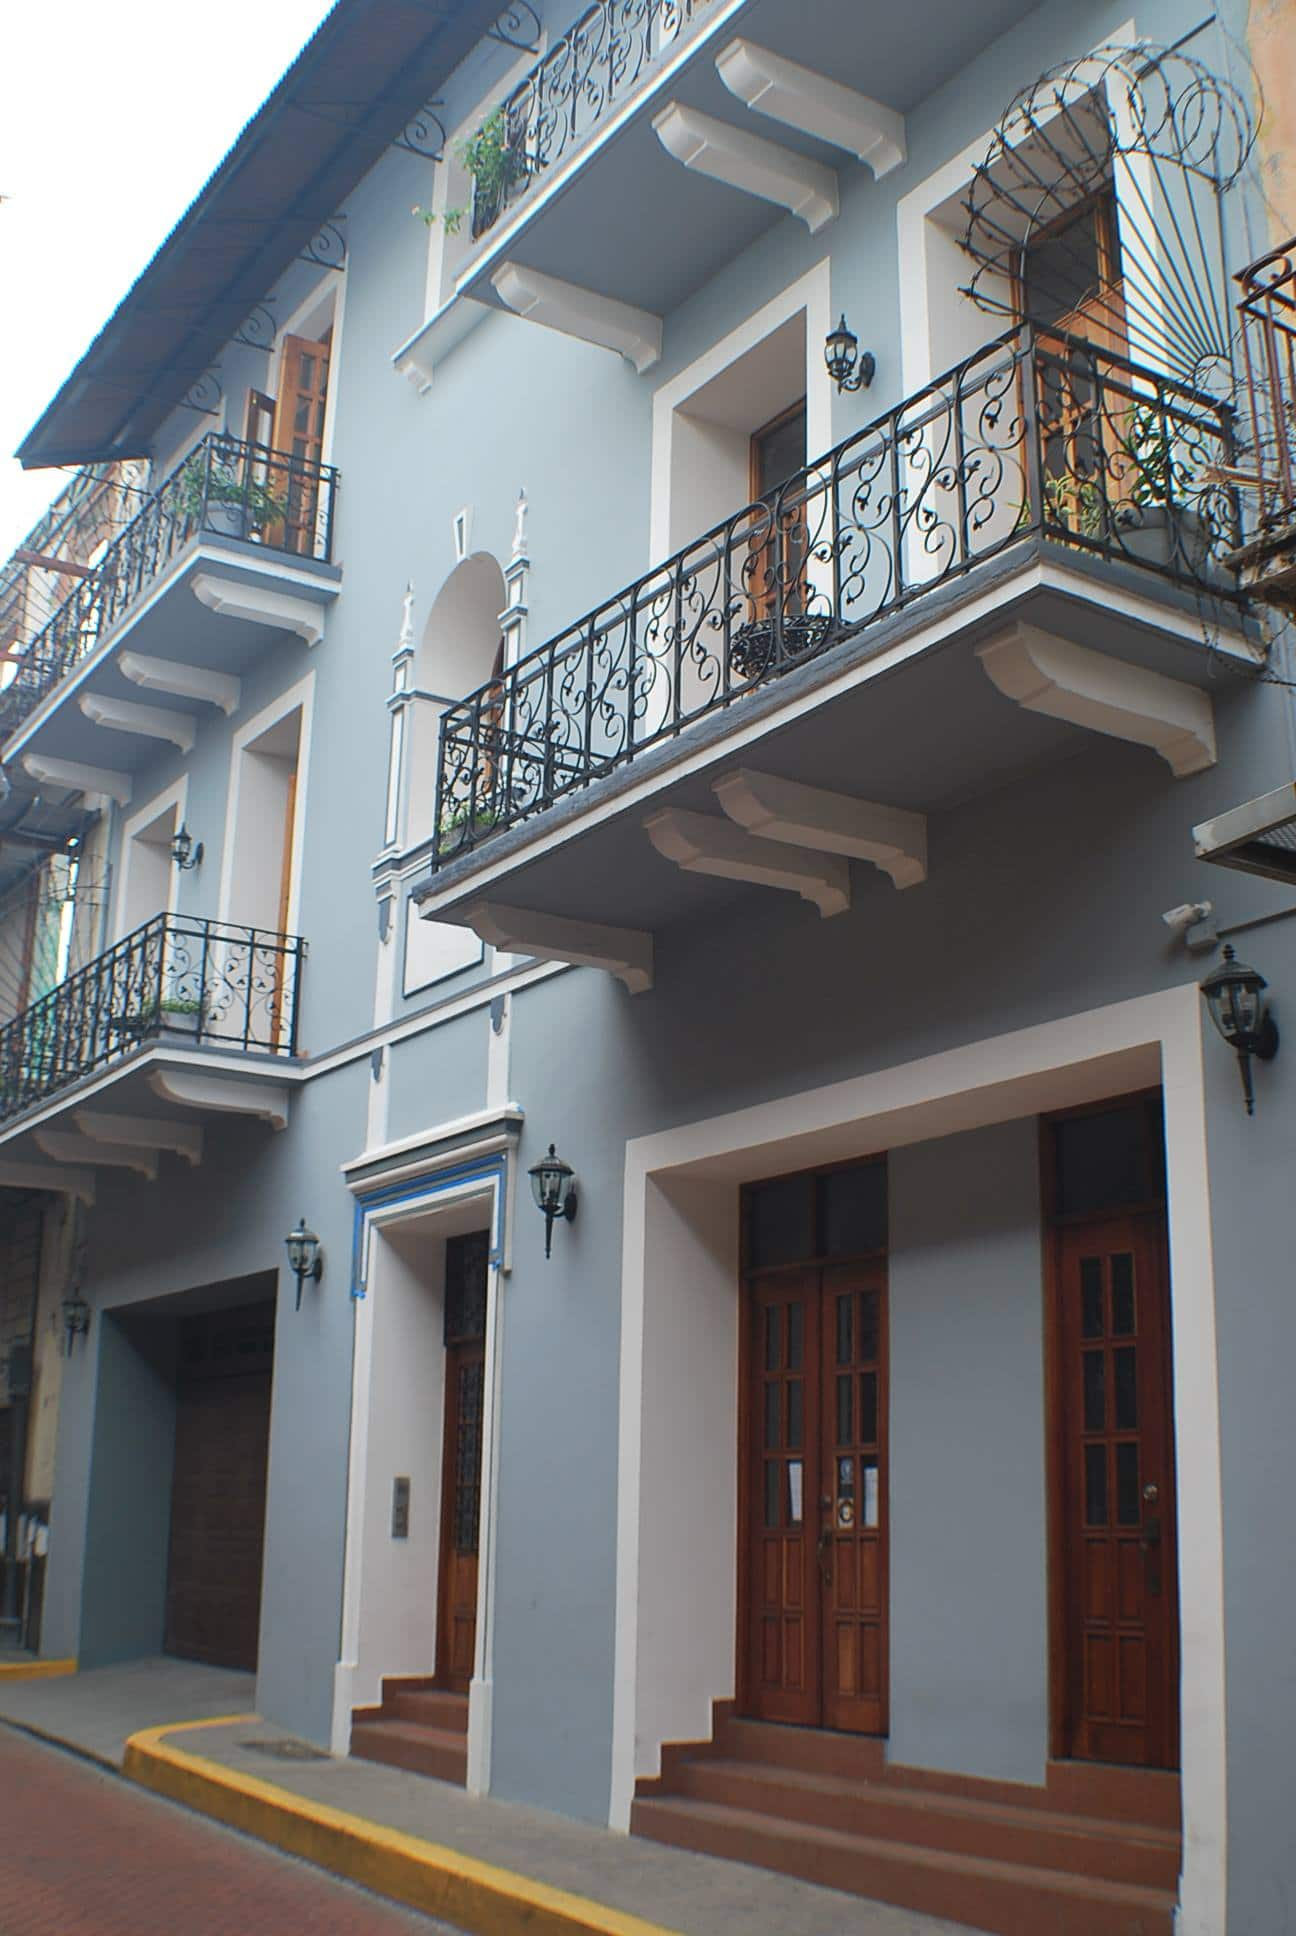 Exterior balconies of La Isabela Suites in Casco Viejo Panama